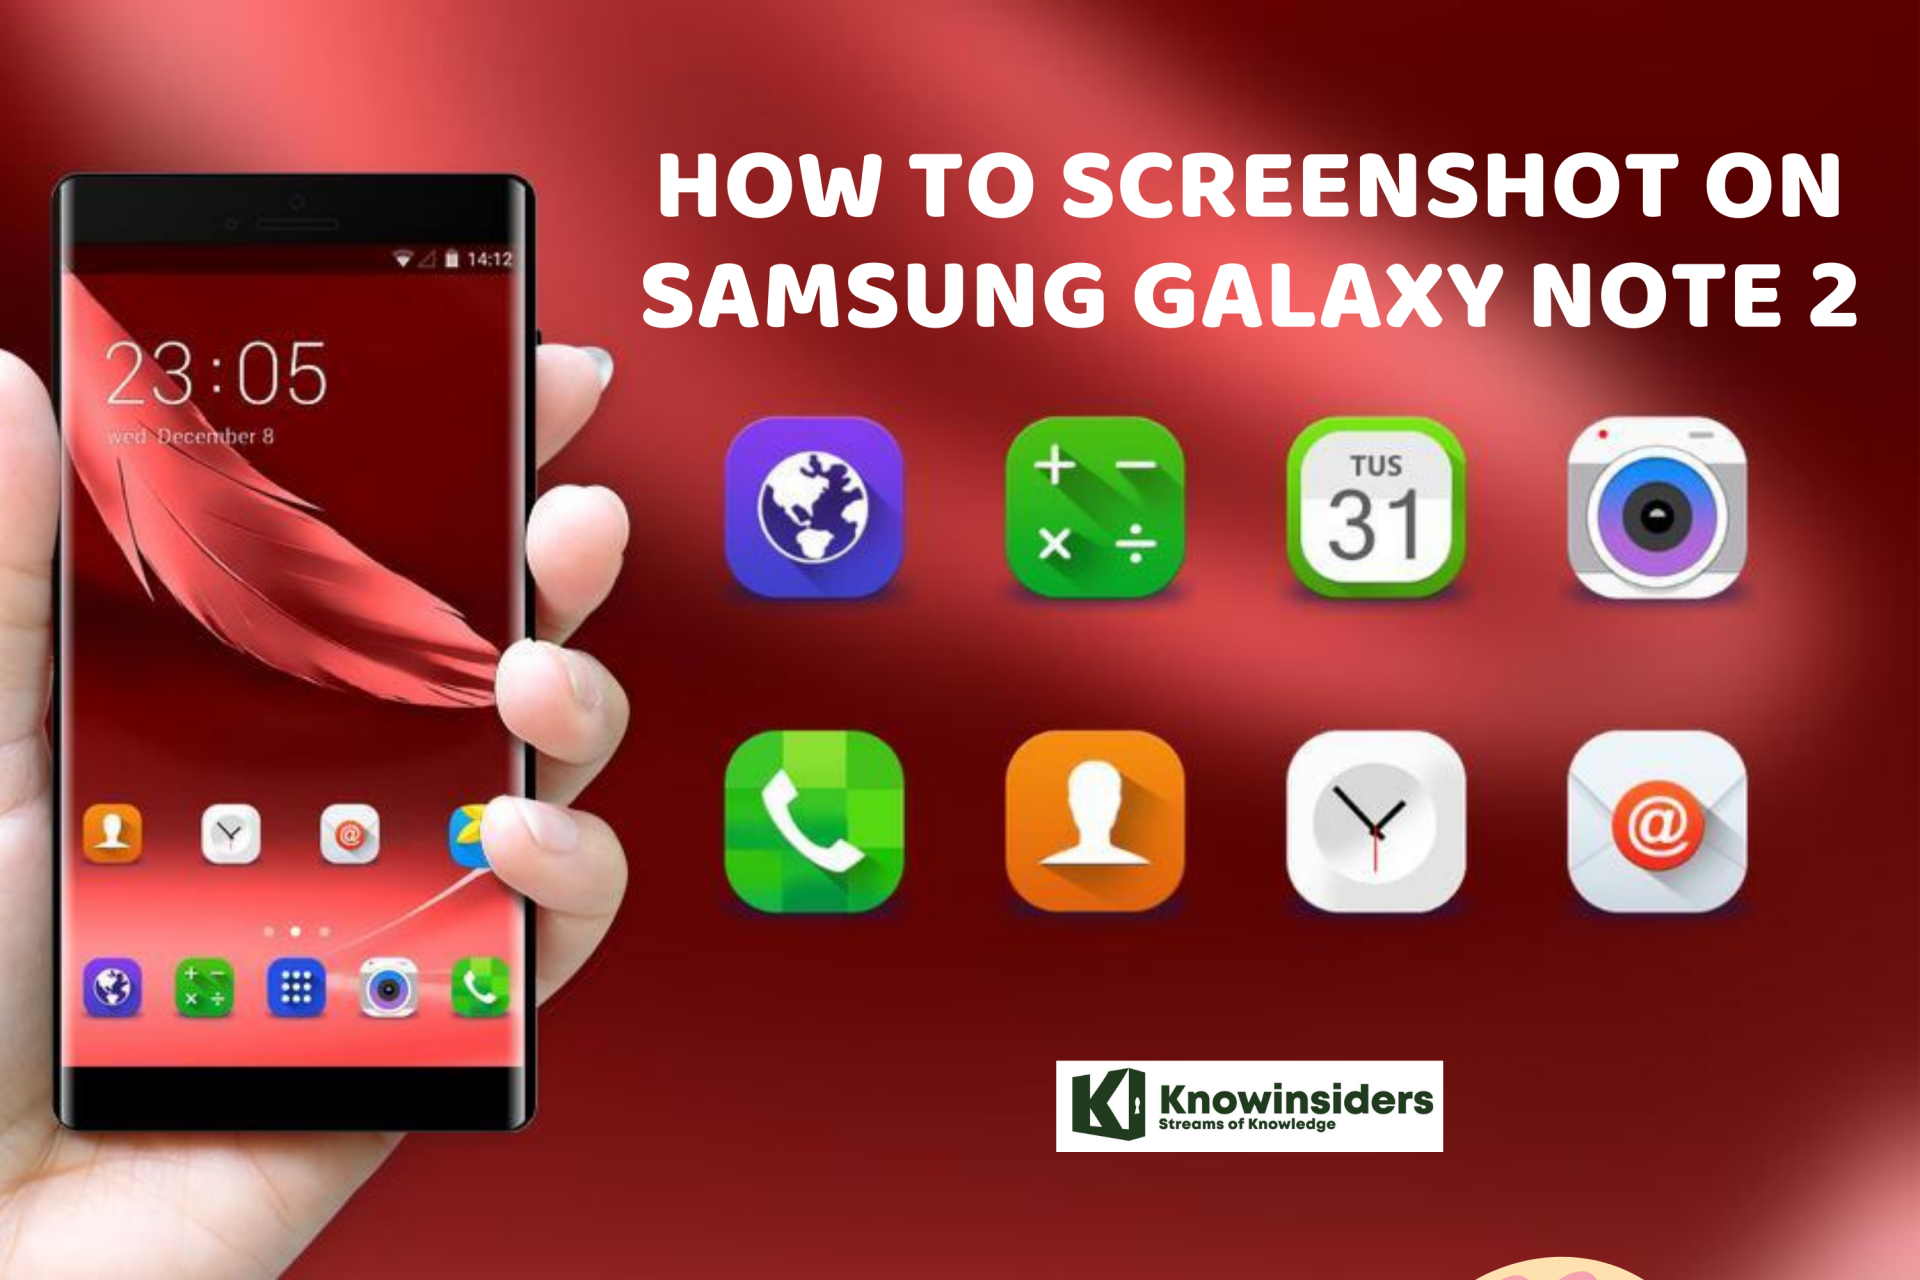 How to Screenshot on Samsung Galaxy Note 2 with Simplest Steps